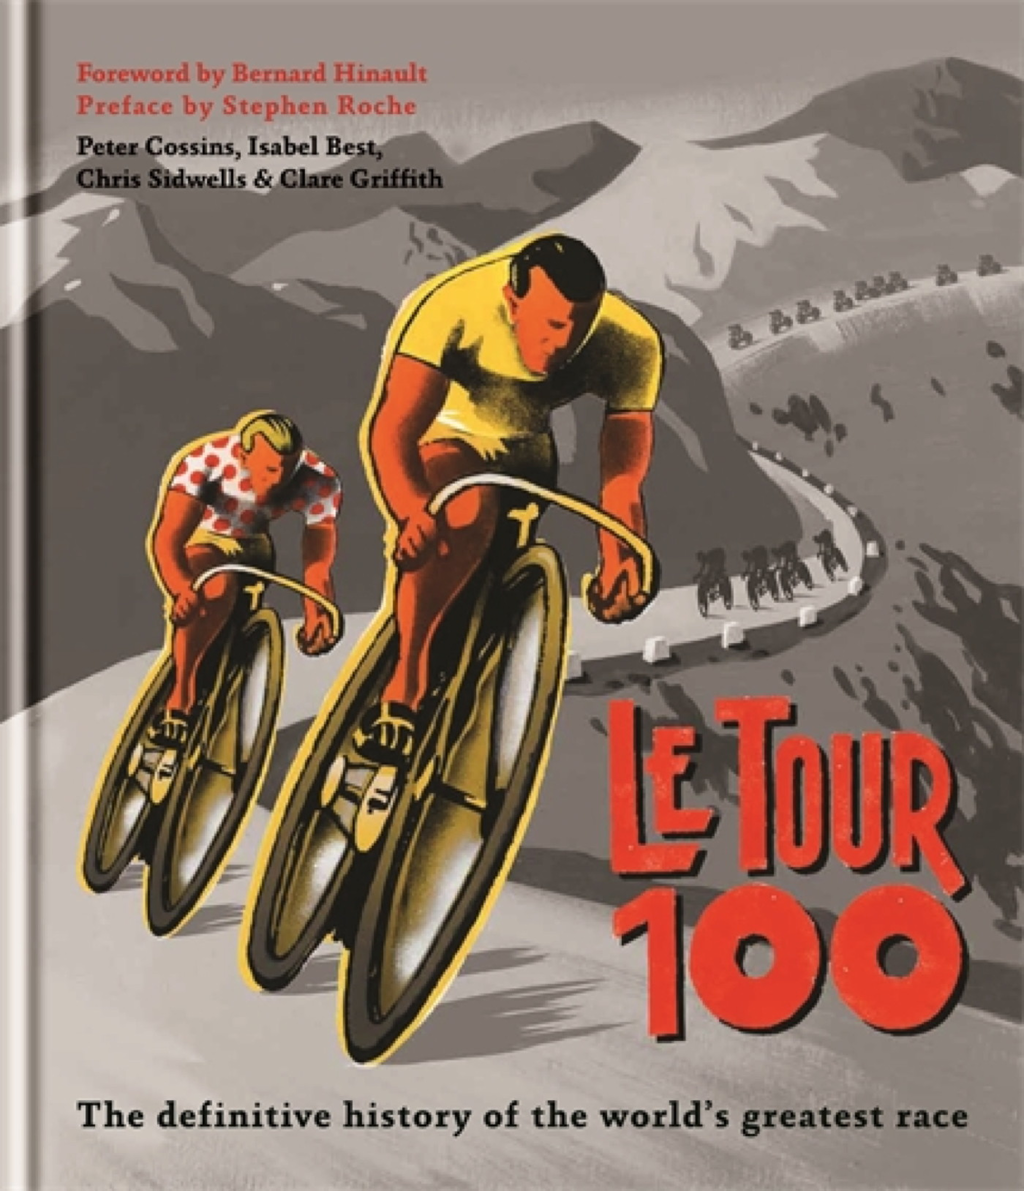 Le Tour 100 The definitive history of the world's greatest race